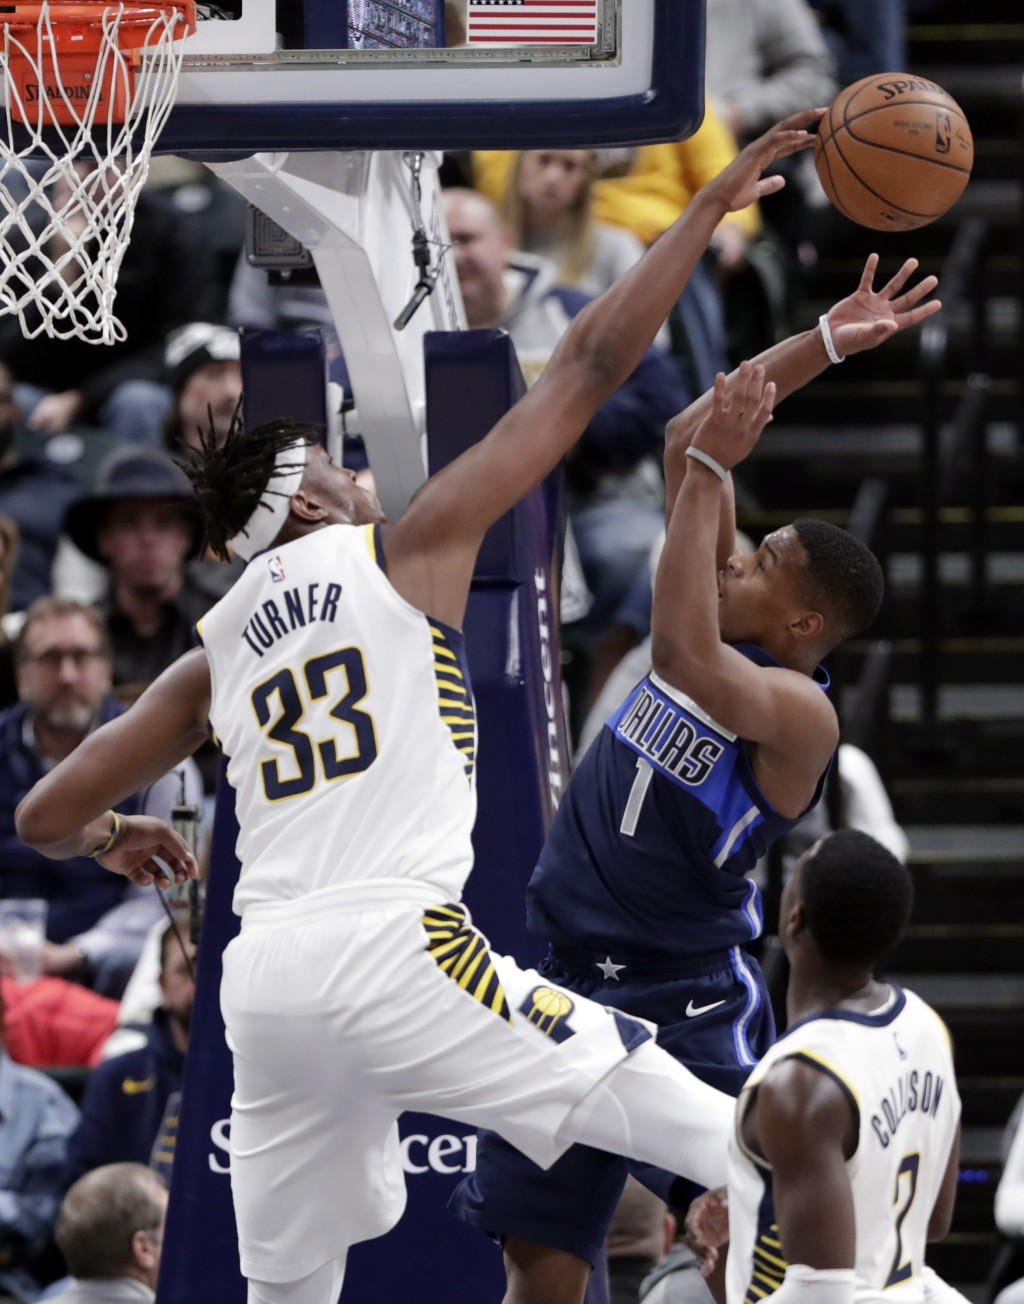 Indiana Pacers center Myles Turner (33) blocks the shot of Dallas Mavericks guard Dennis Smith Jr. (1) during the second half of an NBA basketball gam...